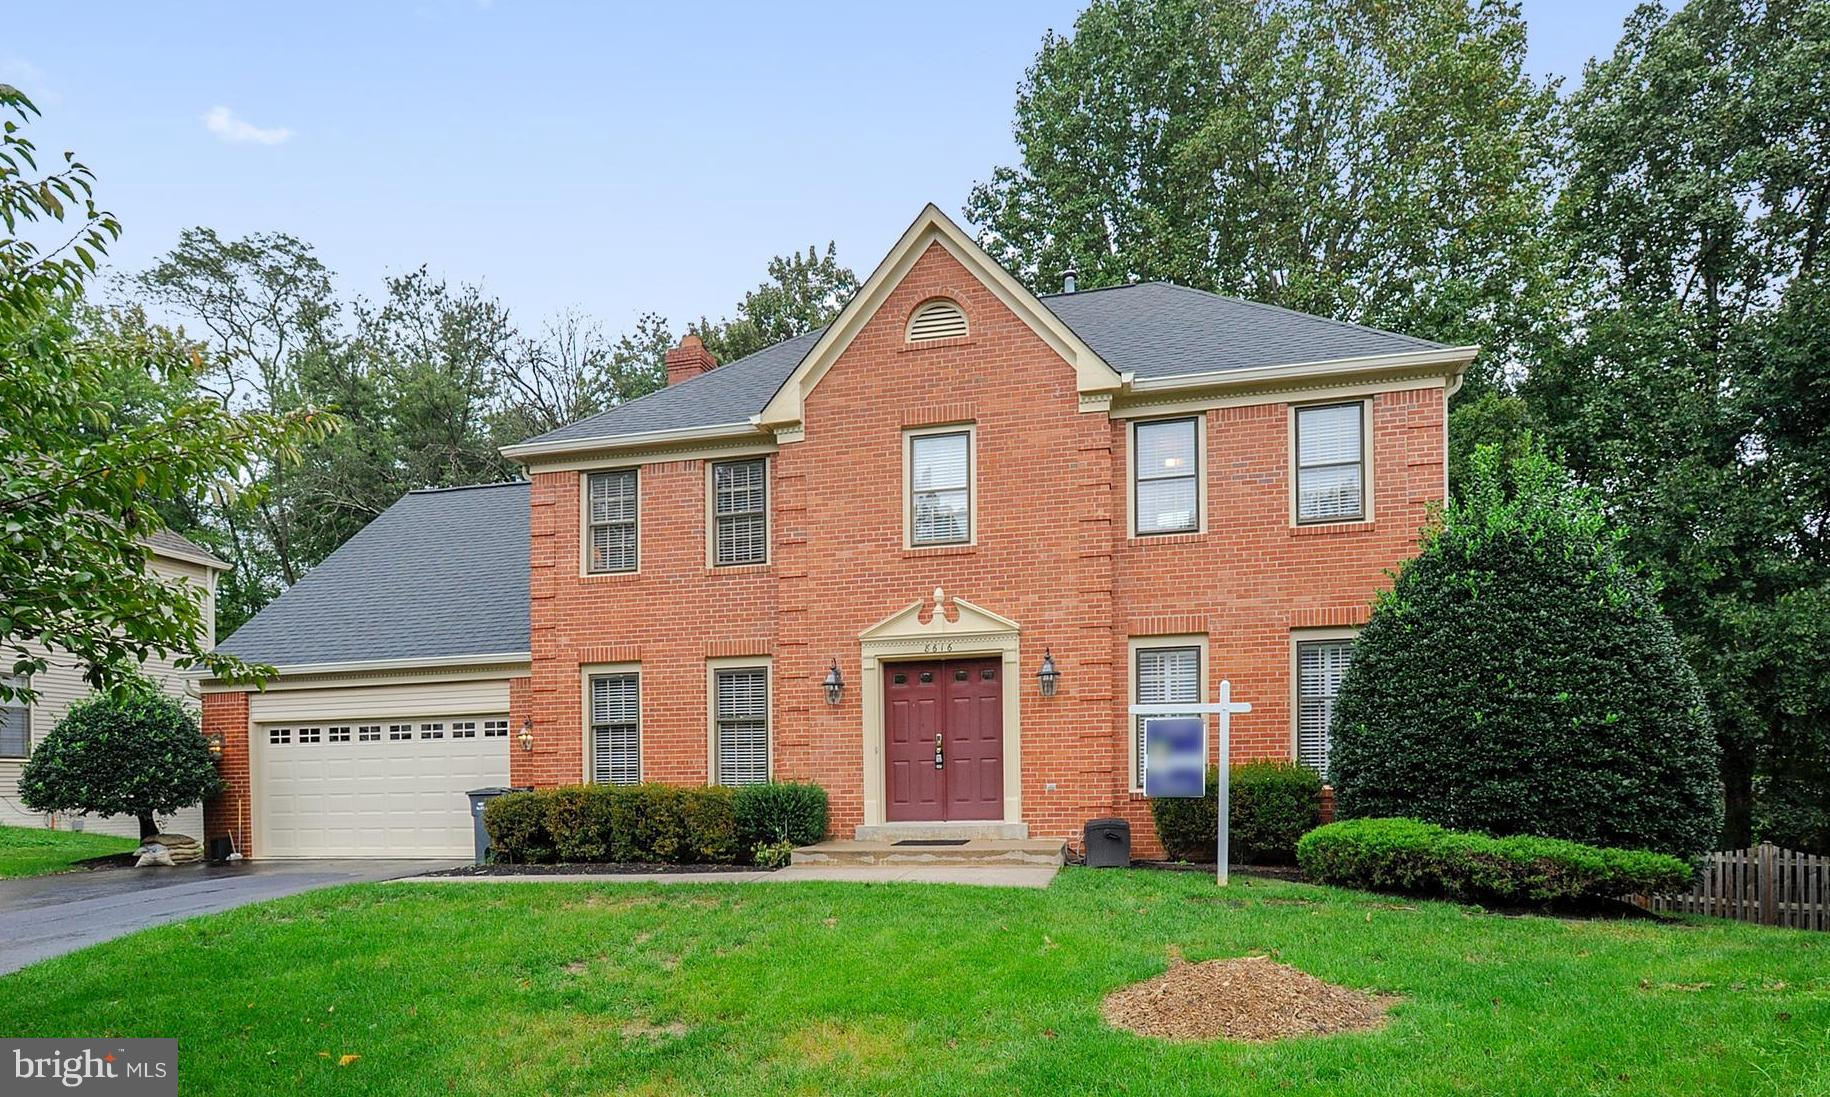 8616 CHERRY DRIVE, FAIRFAX, VA 22031